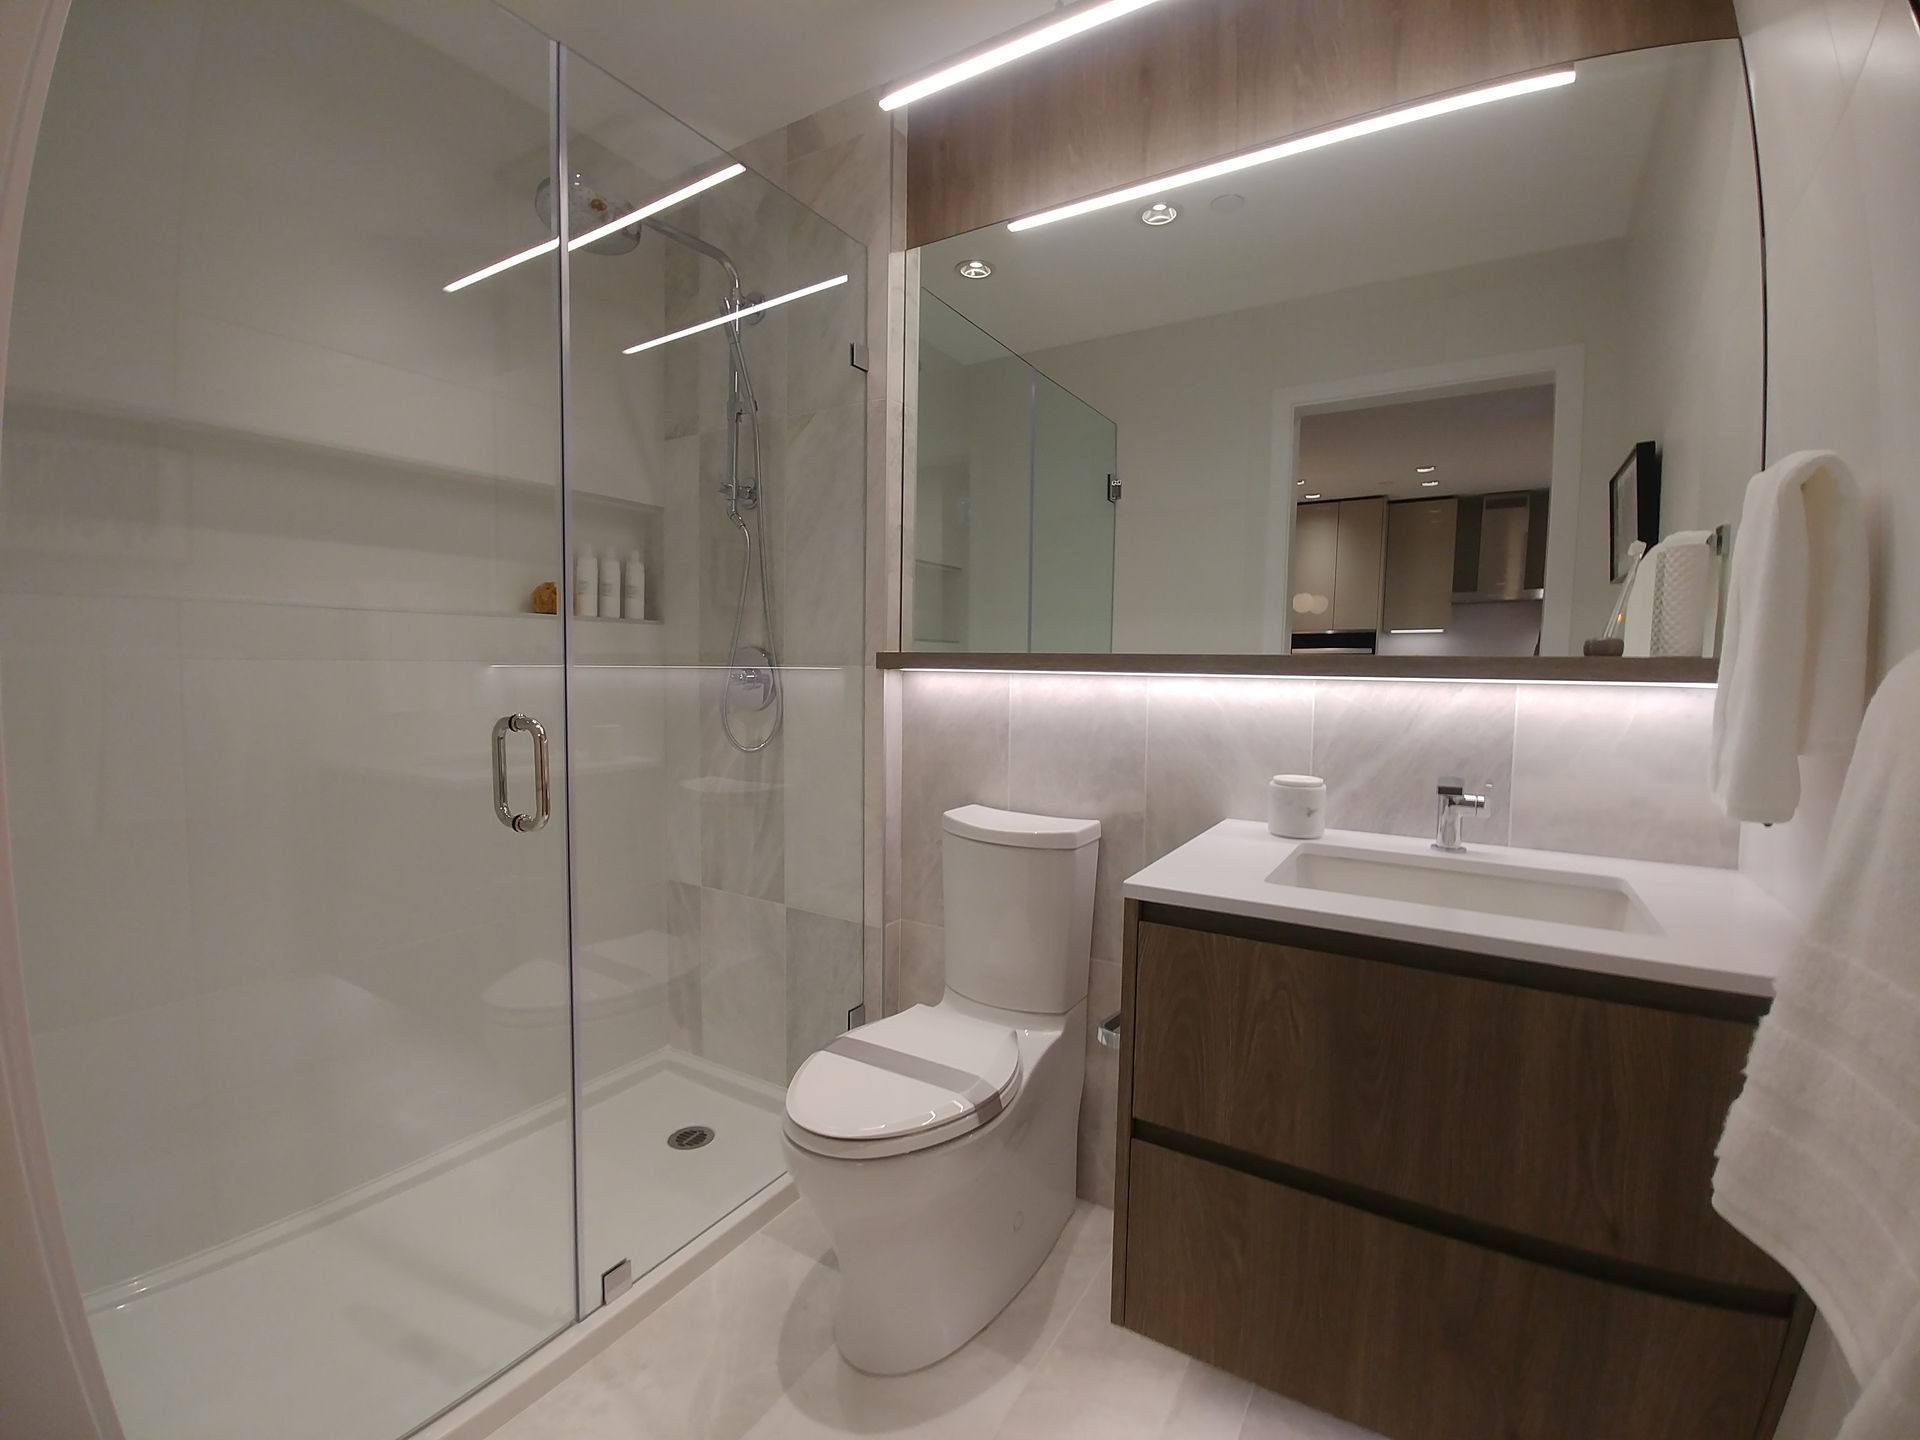 highline-junior-2-bed-b-plan-bathroom-with-included-walk-in-shower at Highline (6811 Sussex Street, Metrotown, Burnaby South)